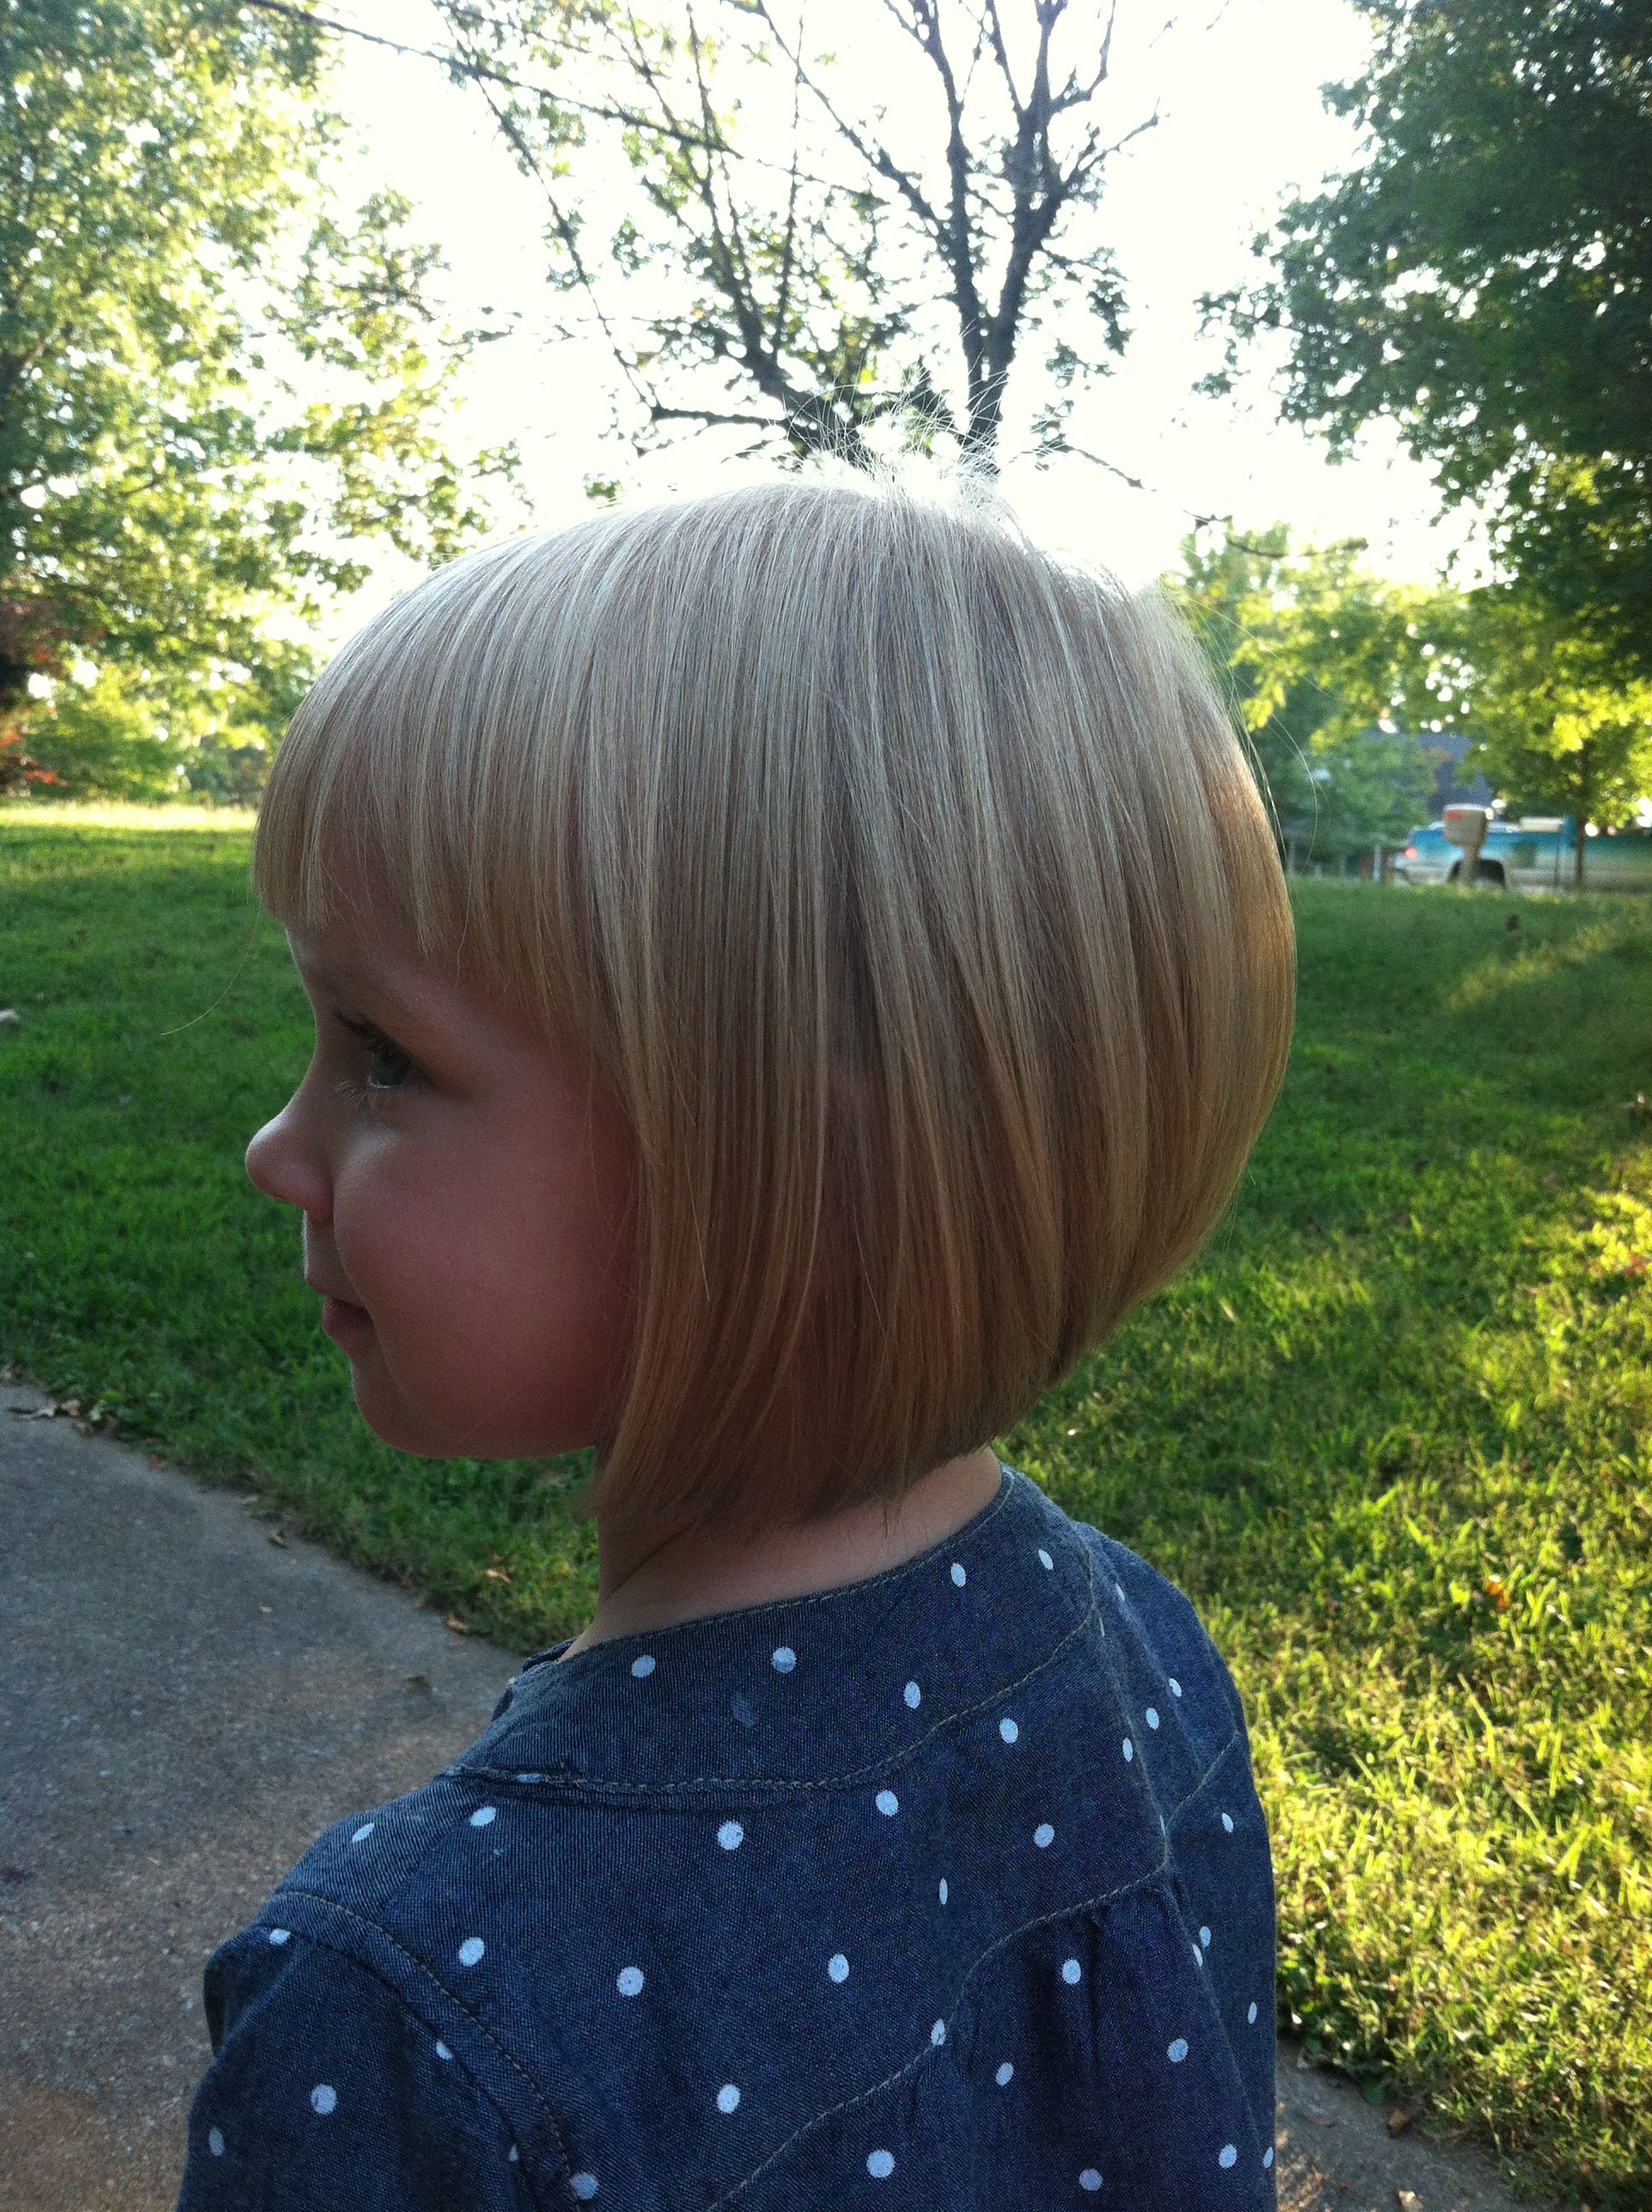 My little girl's inverted bob with bangs <3